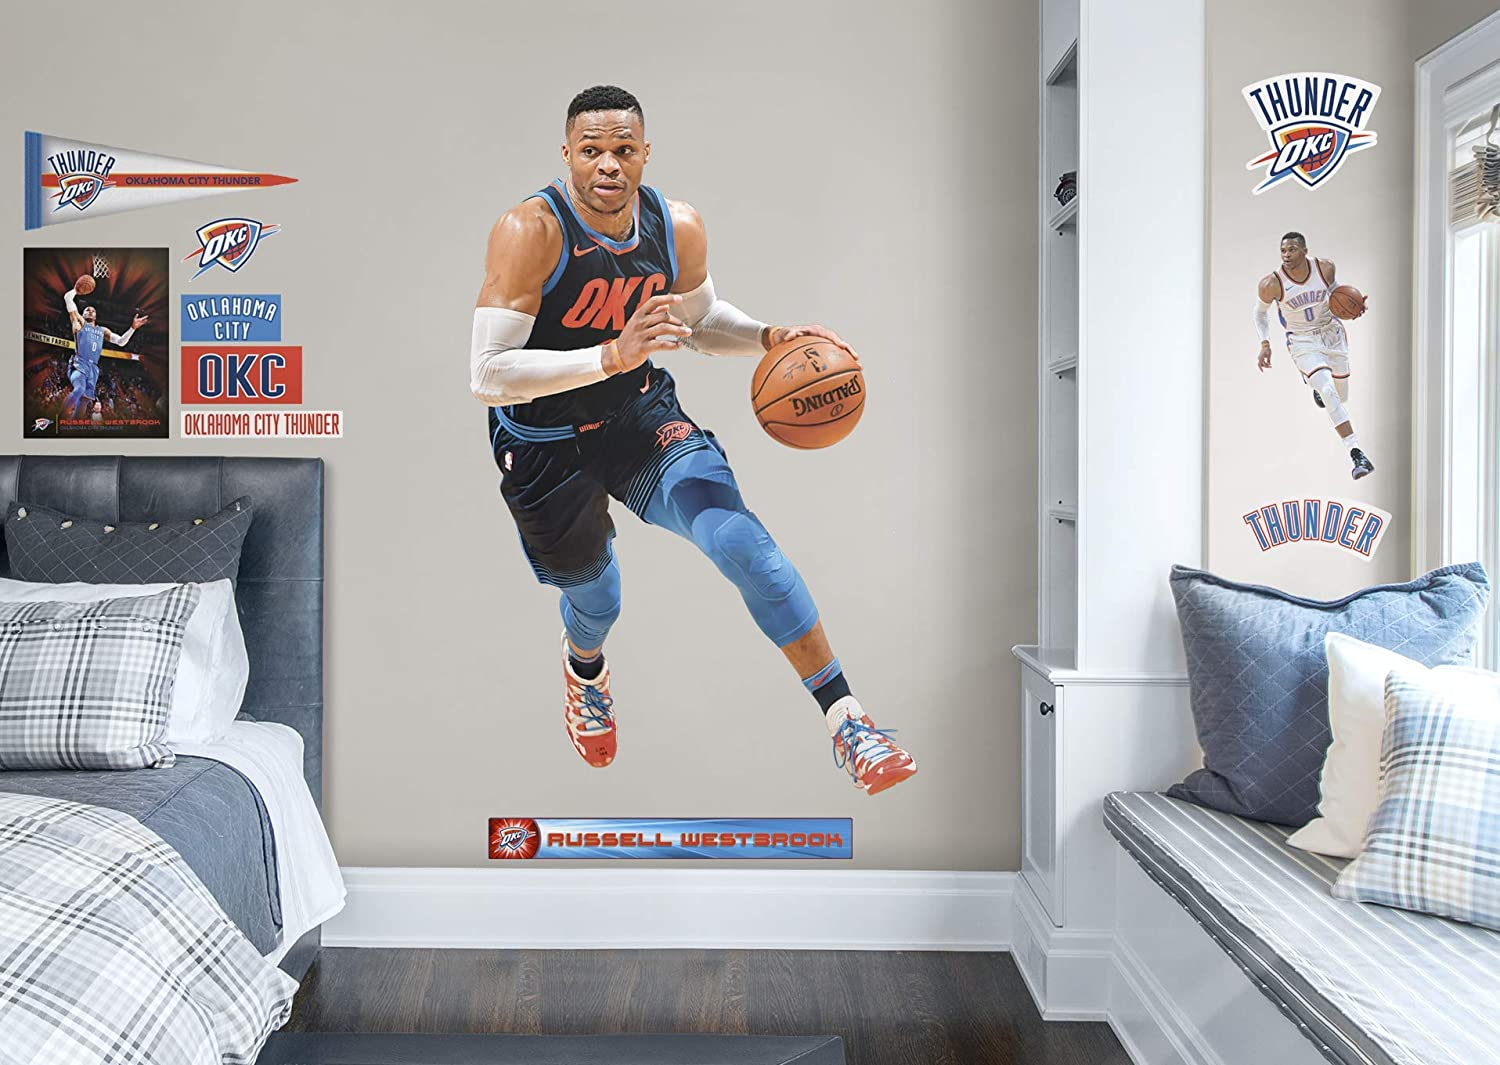 FATHEAD NBA Oklahoma City Thunder Russell Westbrook Officially Licensed Removable Wall Decal Multicolor Large 1900-00308-005